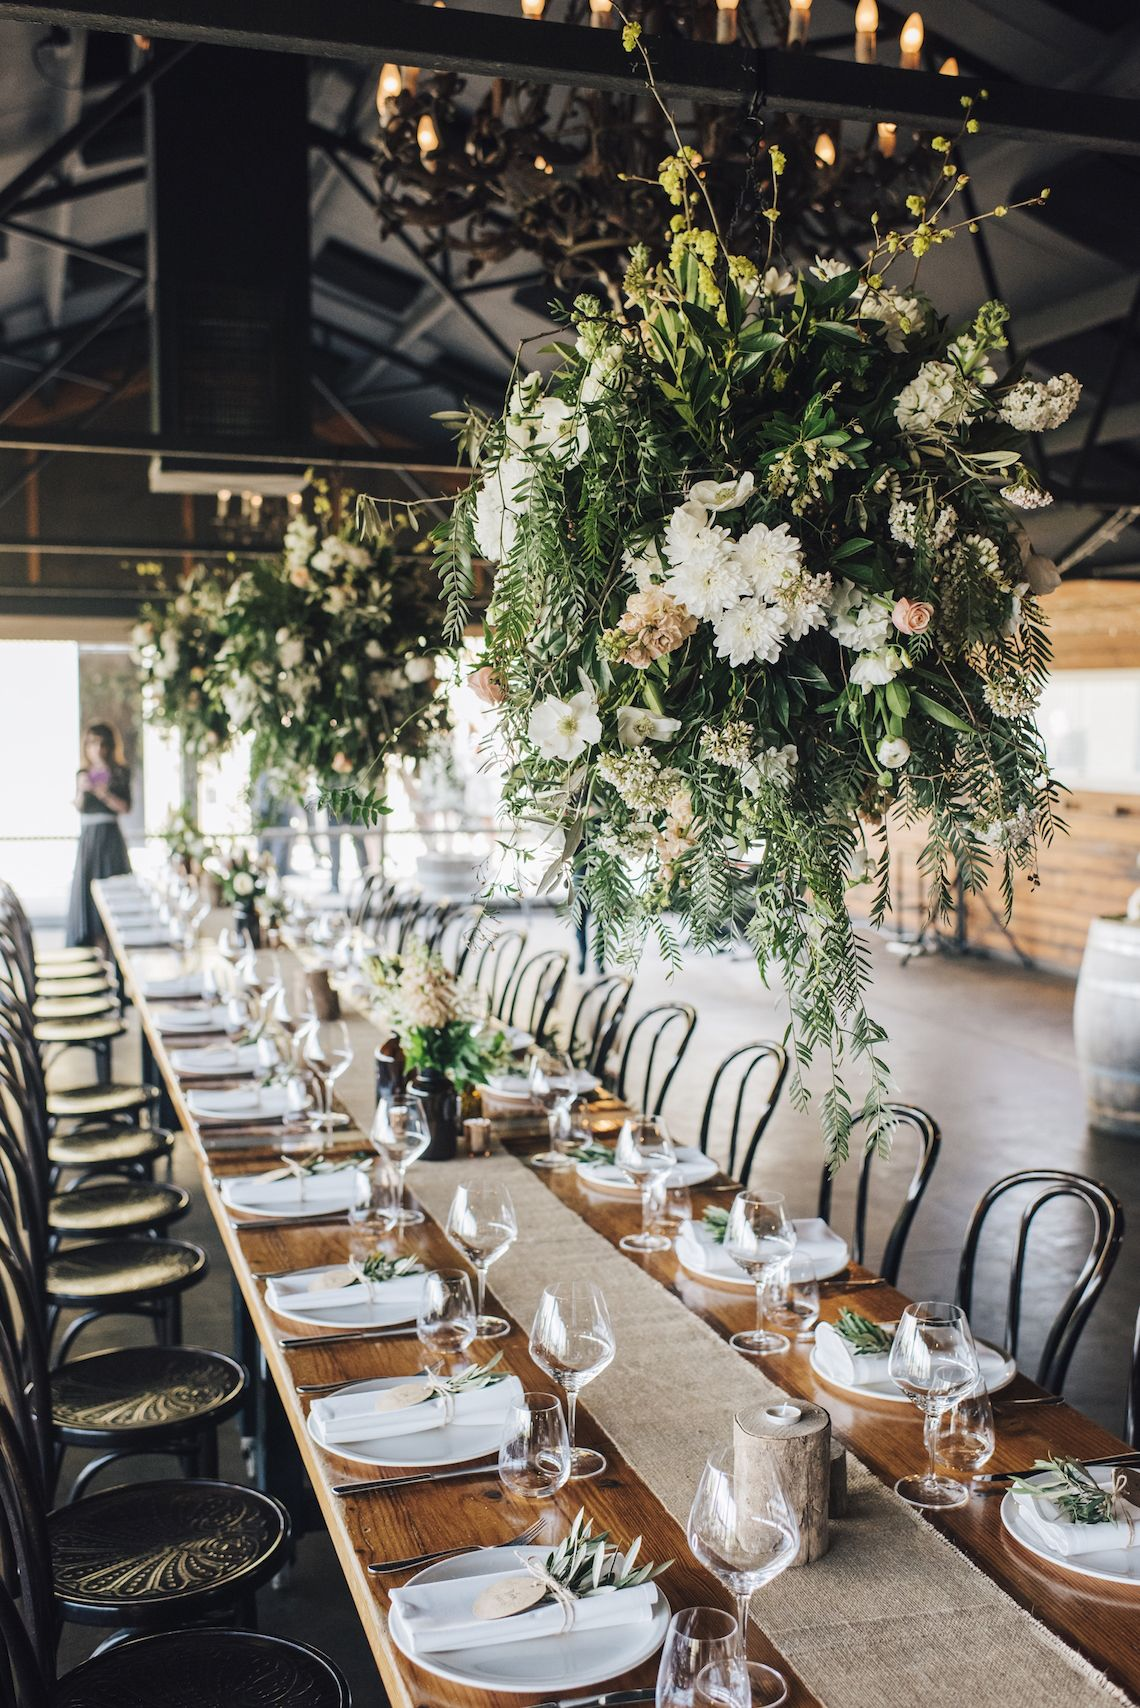 65 questions to ask your wedding venue christmas 2017 pinterest were giving real talk practical wedding planning advice on finding a wedding venue with 65 questions you should ask on your venue tour junglespirit Image collections